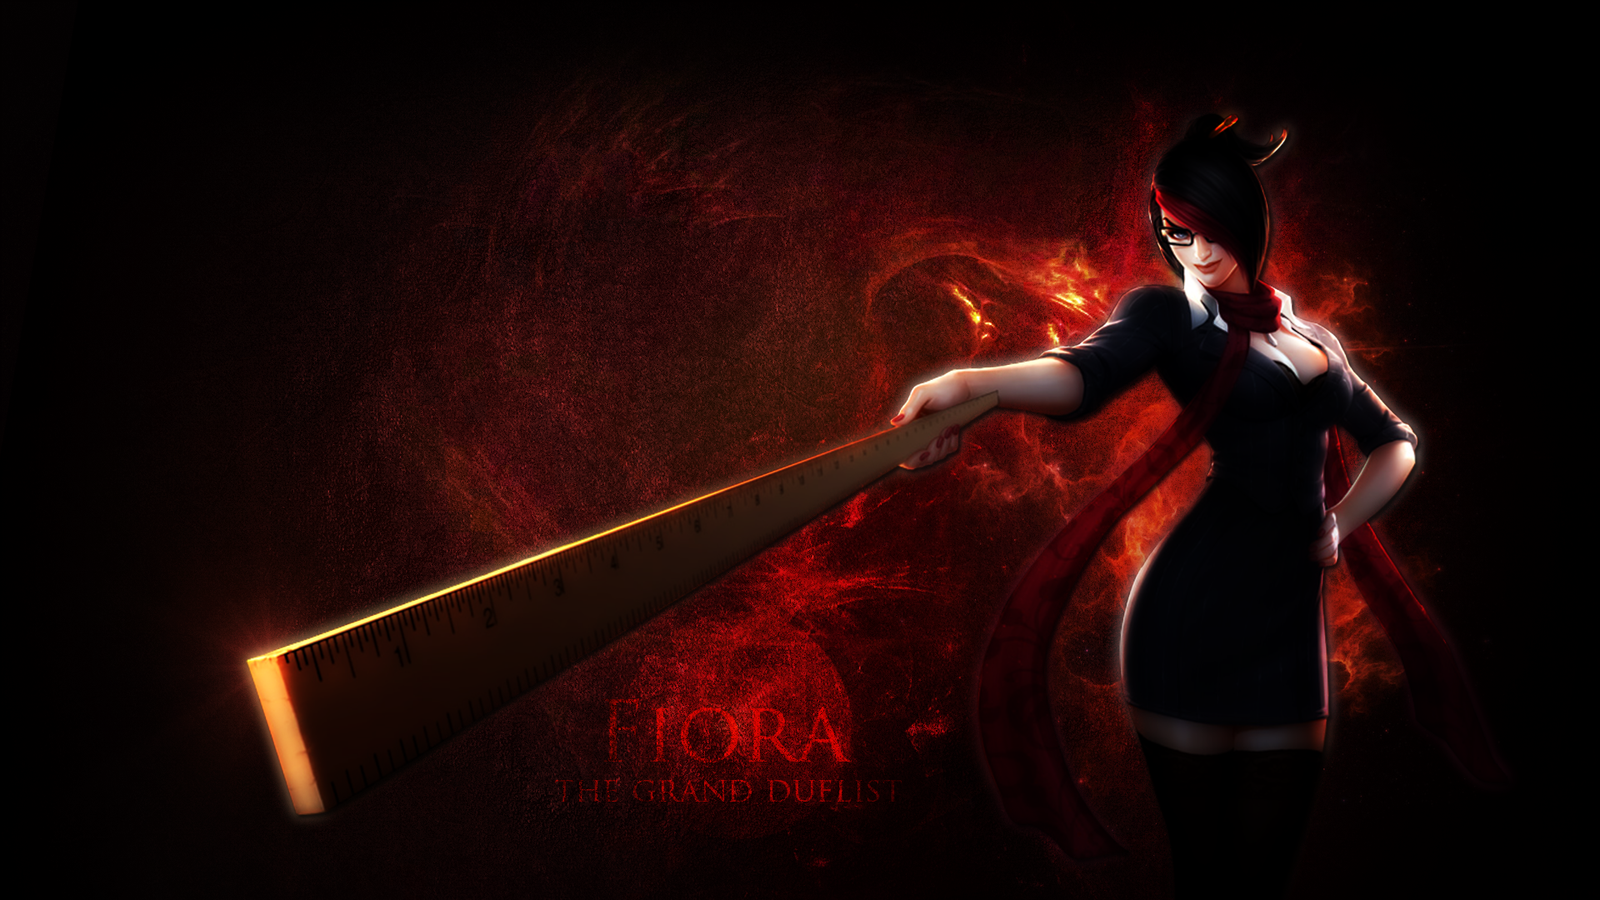 [League of Legends] FanArt - Fiora wallpaper by xMentos on ...